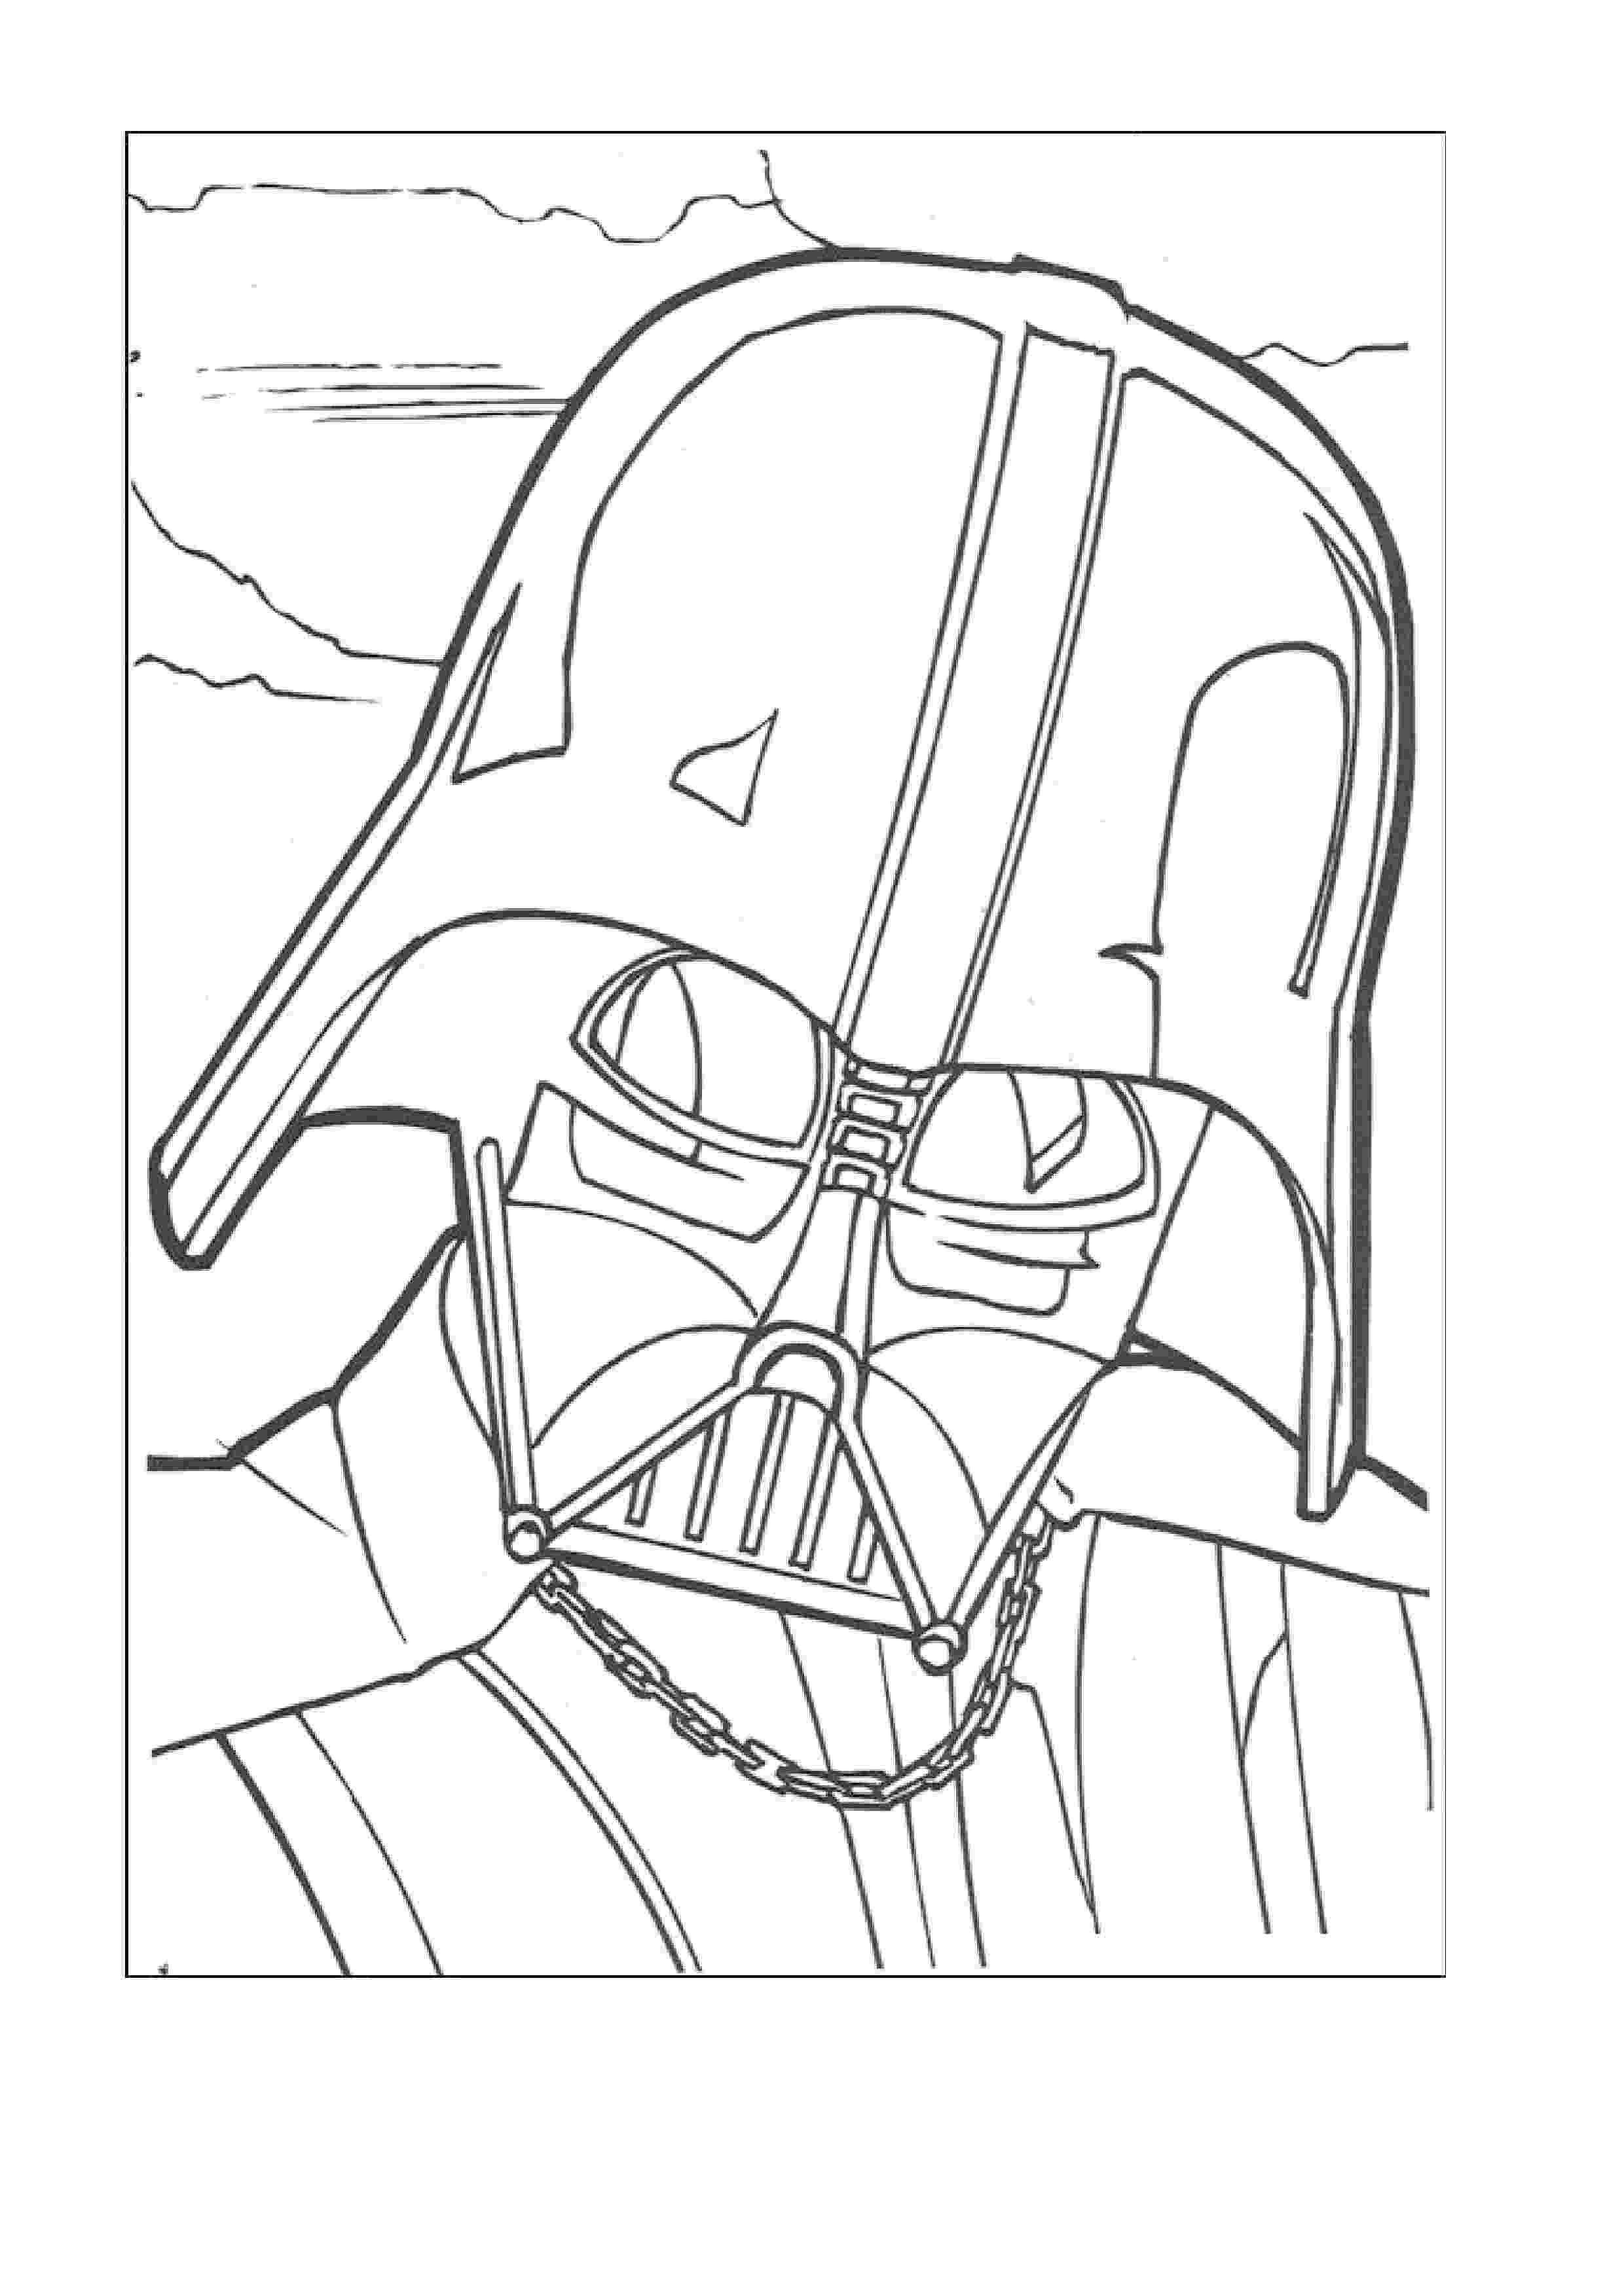 free printable star wars coloring pages coloring star wars coloring templates coloring pages free printable wars coloring star pages